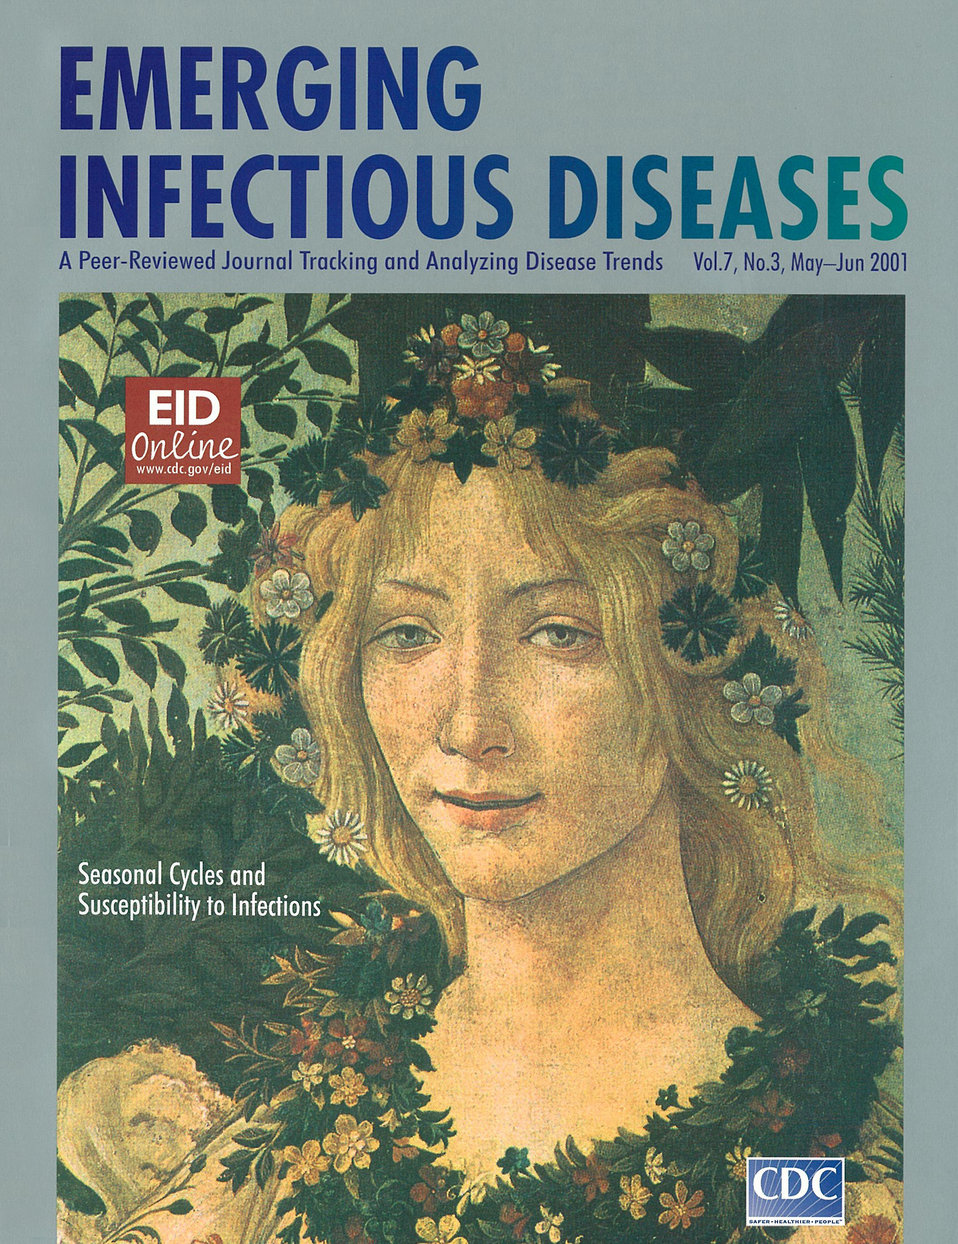 Emerging Infectious Diseases (EID) cover artwork for Volume 7, Number 3, May-June 2001 issue.